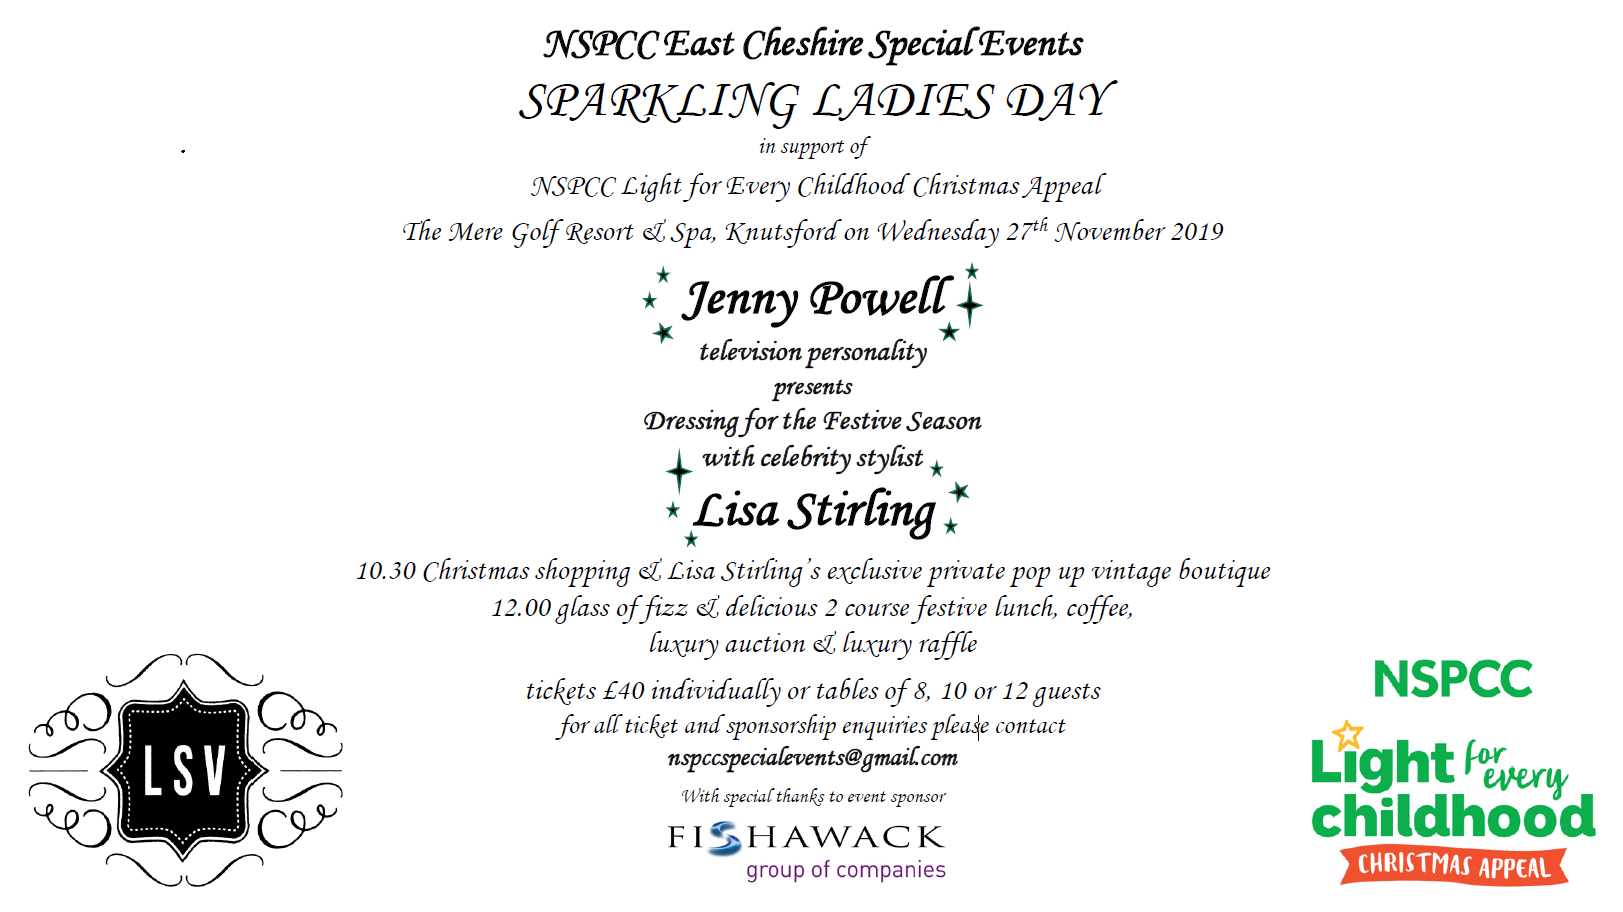 NSPCC East Cheshire Special Events - Sparkling Ladies Day